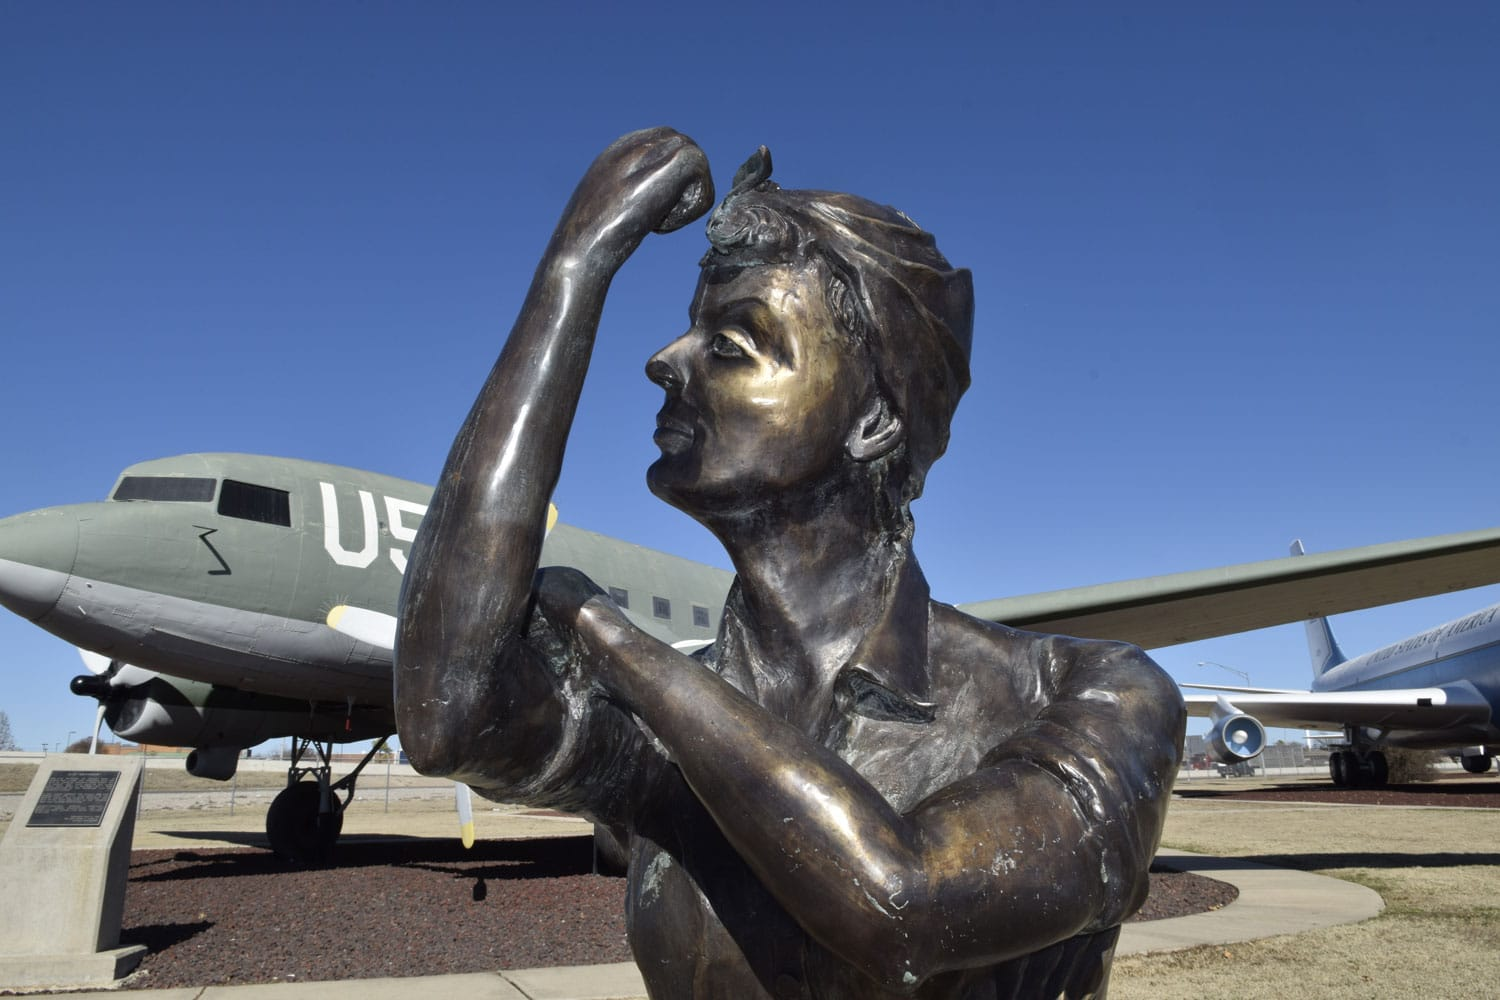 Many women worked in the Douglas Aircraft manufacturing plant in Oklahoma City to produce C-47 aircraft like the one visible behind her. The free public park features aircraft operated or maintained by Tinker AFB over the years and is located near the main entrance to the base with free parking available.